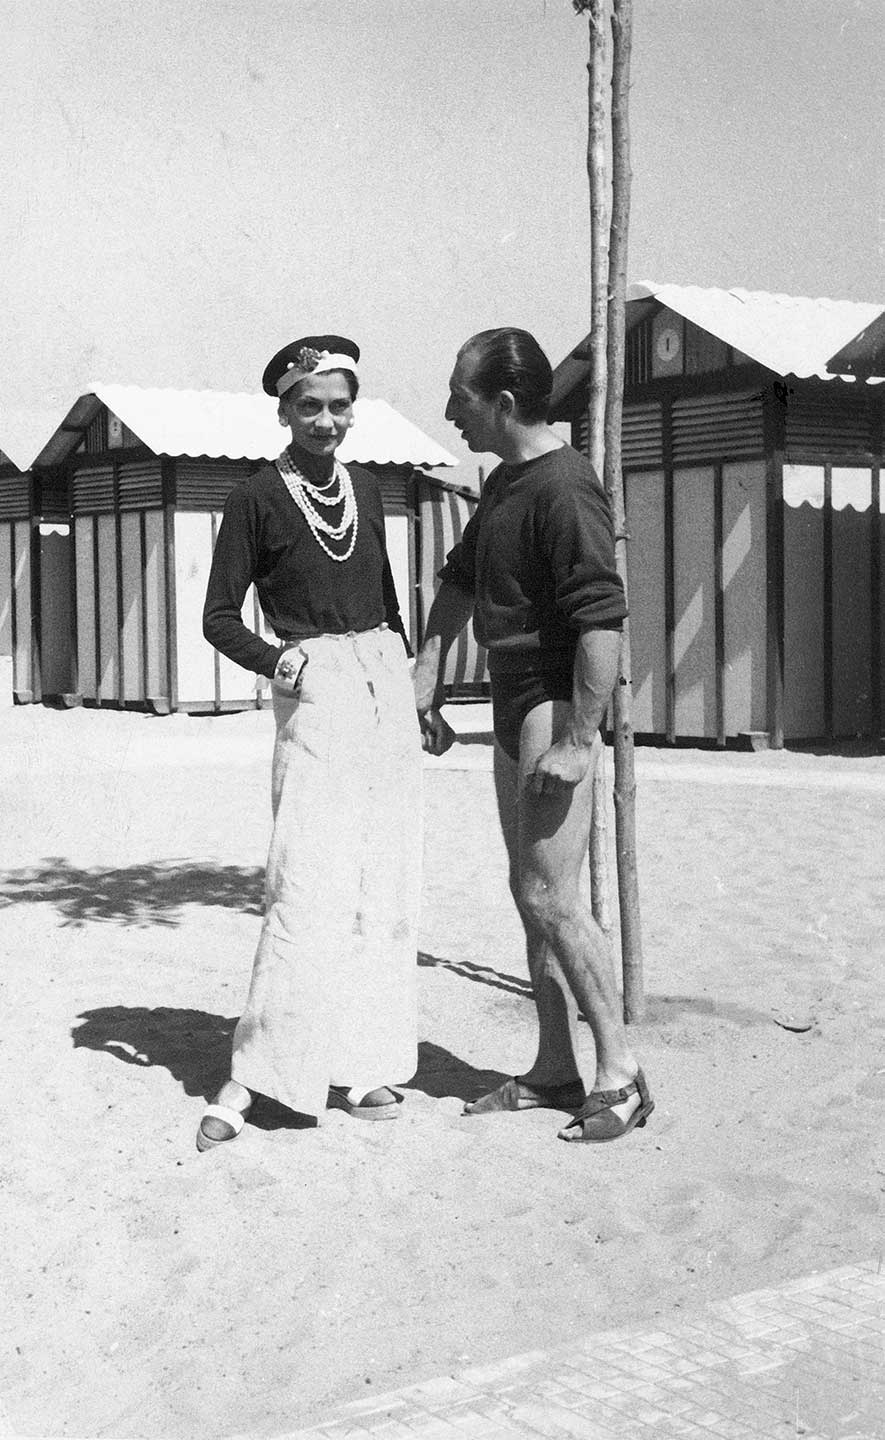 Fashion designer Coco Chanel with Duke Laurino of Rome on beach at the Lido Image courtesy Time Life Pictures/Pictures Inc./The LIFE Picture Collection/Getty Image